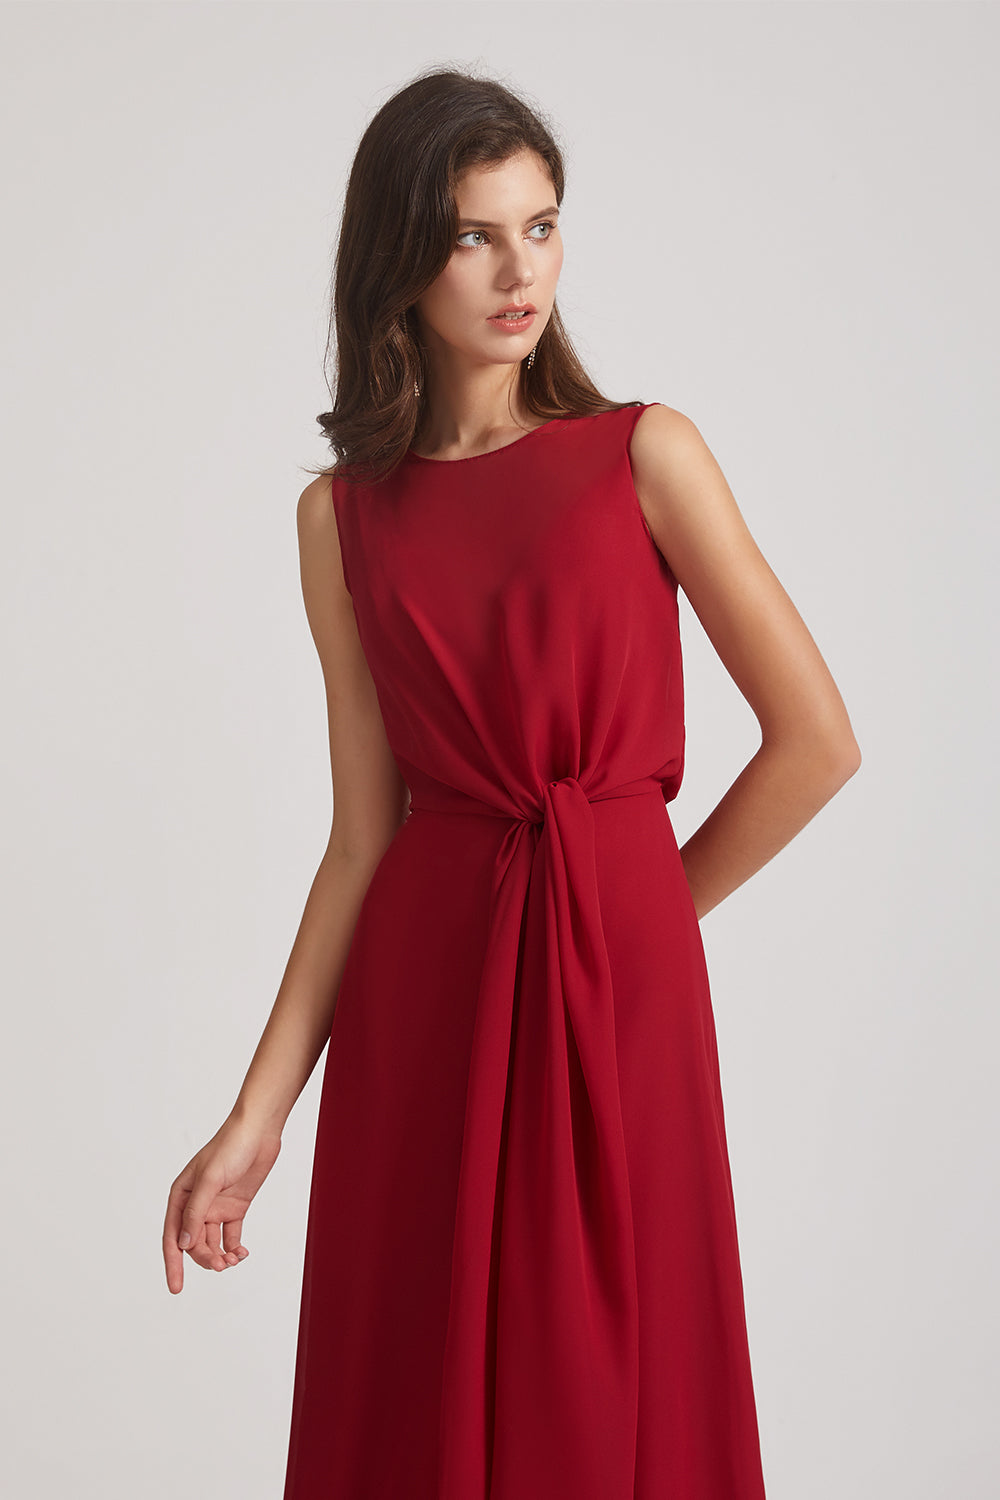 tie-waist bridesmaids dresses